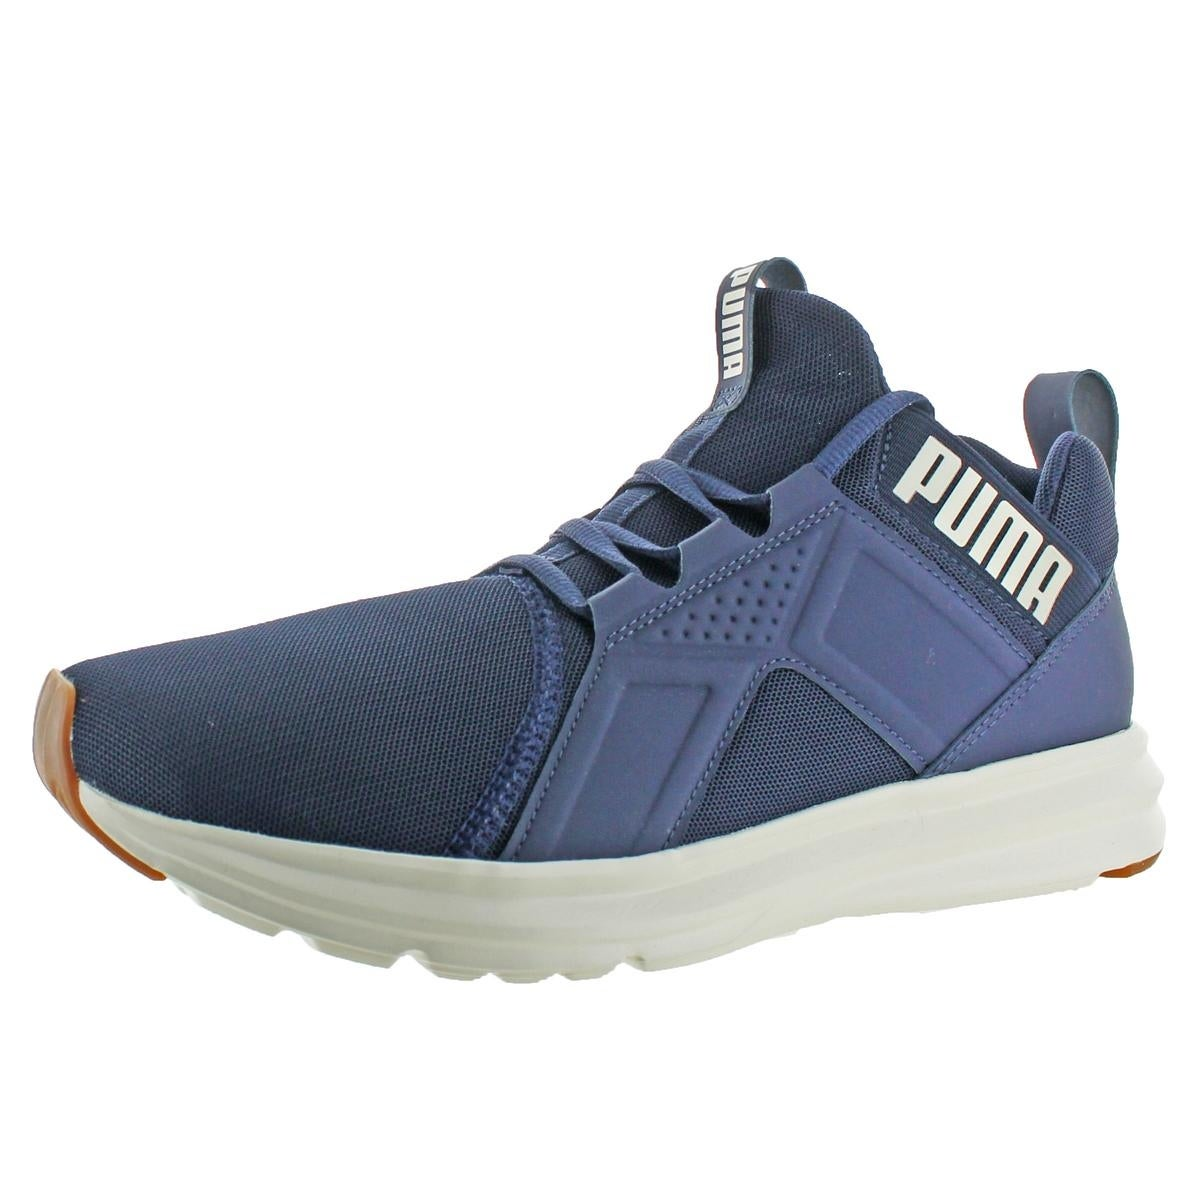 f31142e9c97f9f Shop Puma Mens Enzo Mesh Running Shoes Softfoam Trainers - Free Shipping On  Orders Over  45 - Overstock - 21936282